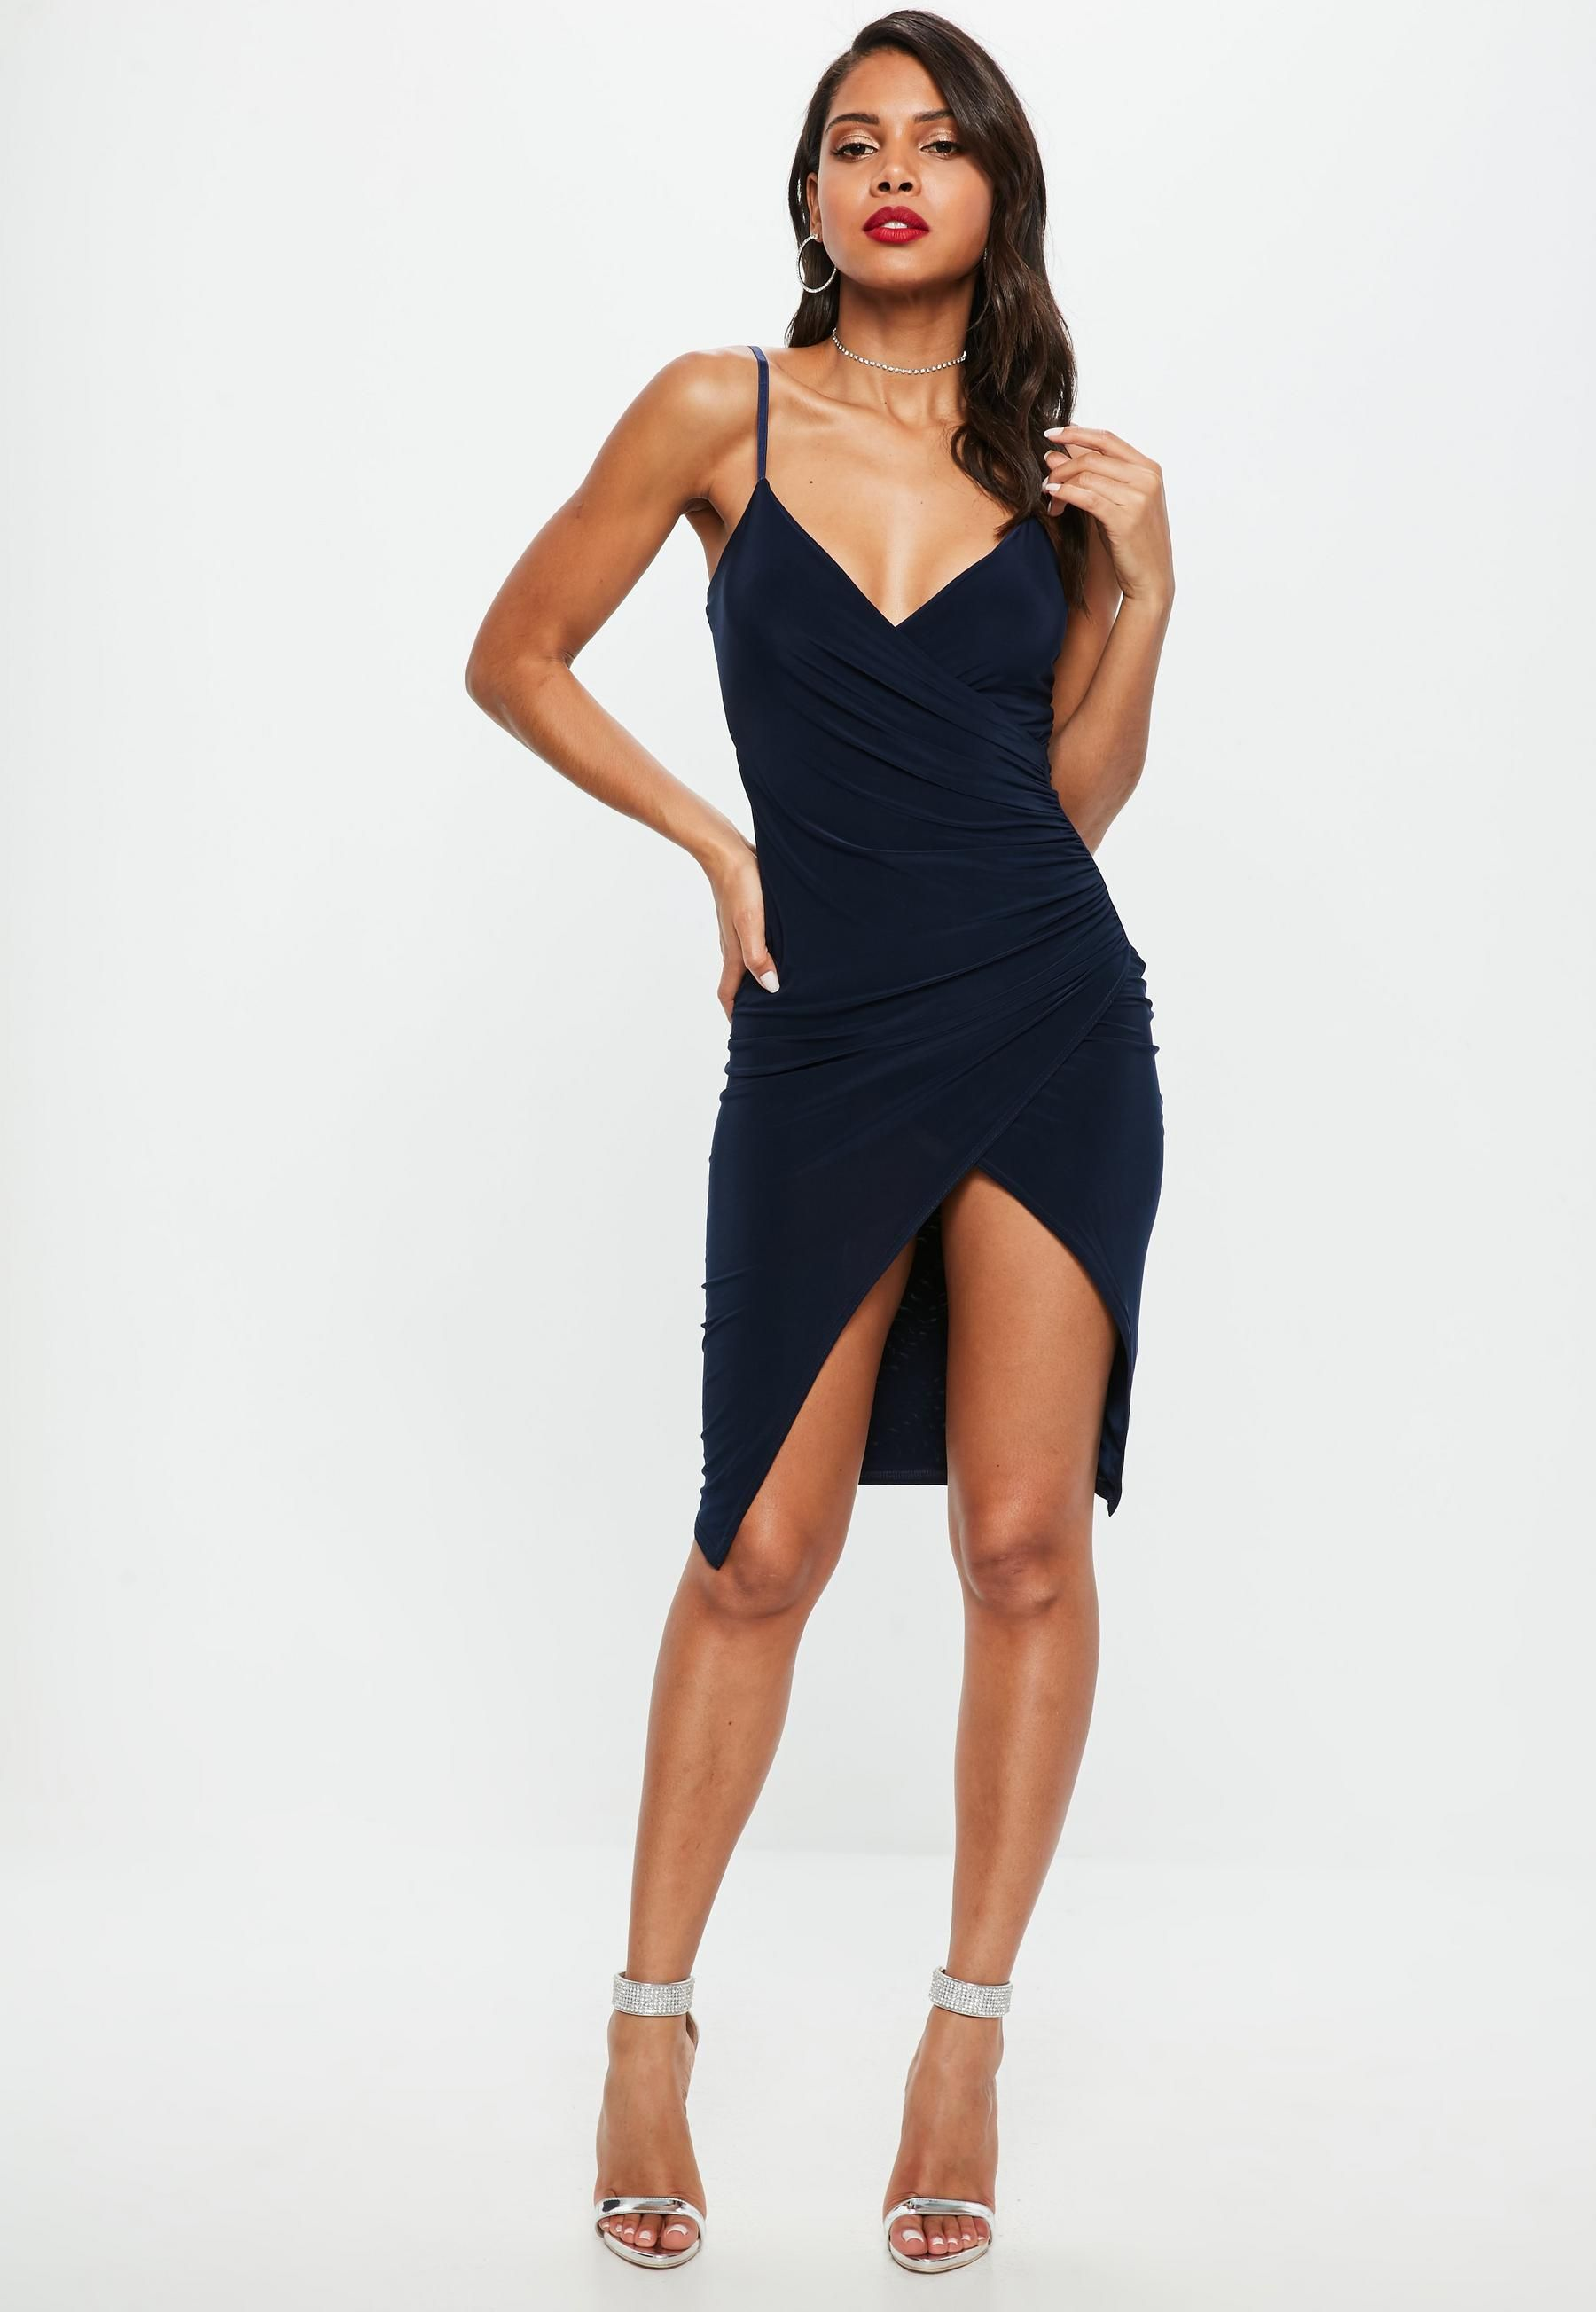 Missguided Khaki Cami Ruched Split Side Midi Dress Outlet Huge Surprise From China For Sale bQUXf7Jk